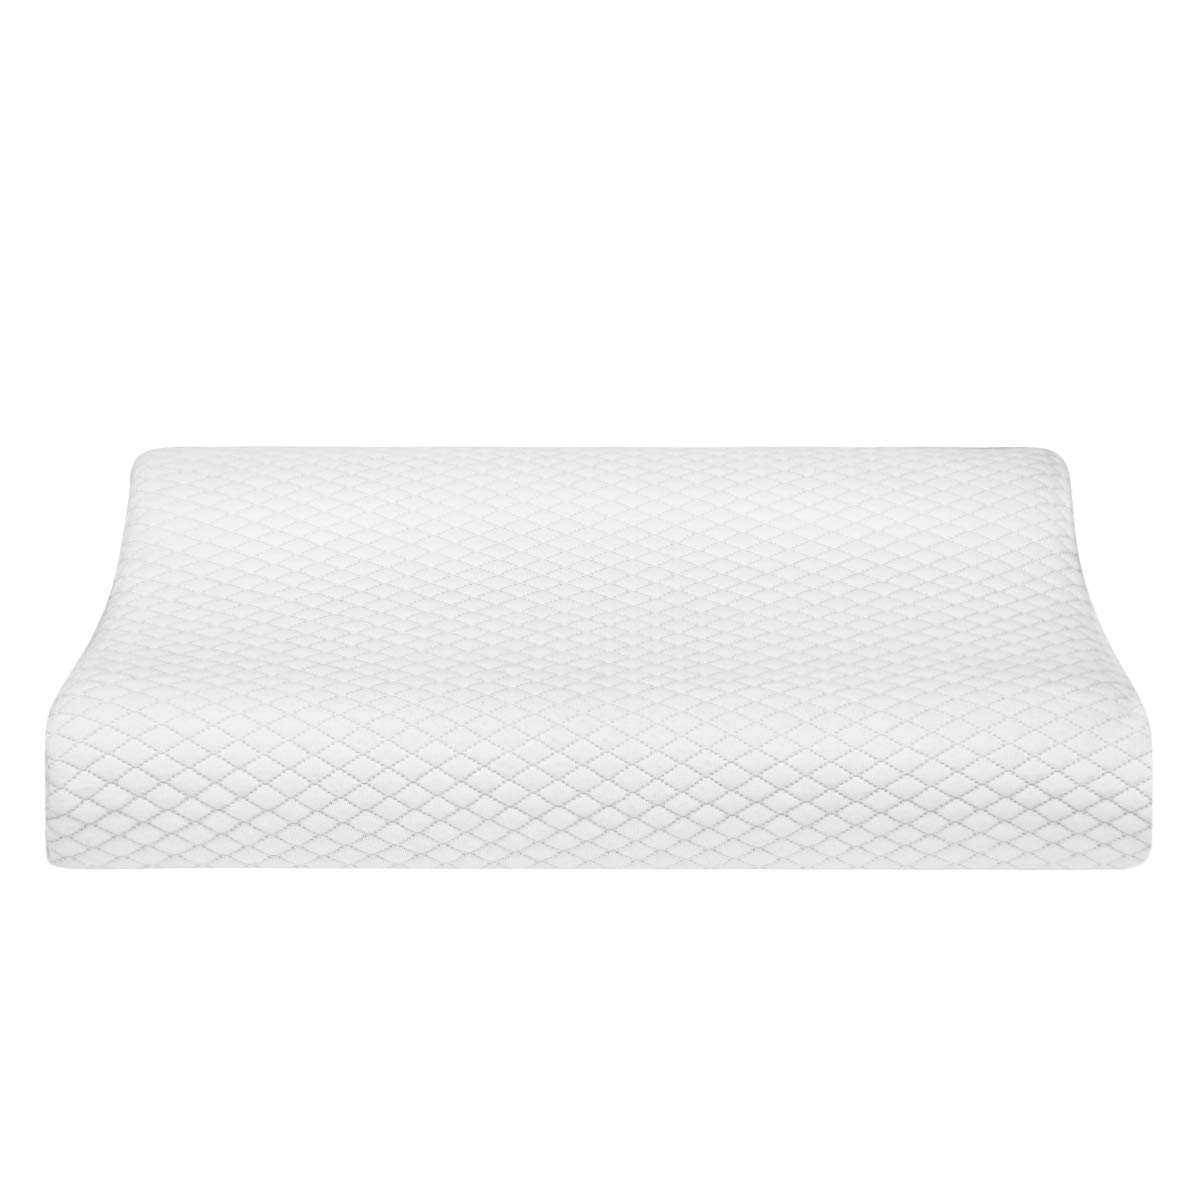 HOMEIDEAS Contour Memory Foam Pillows - Cervical Pillow, Chiropractic Pillows - Orthopedic Neck Pillow for Neck Pain, Stomach, Side Sleepers